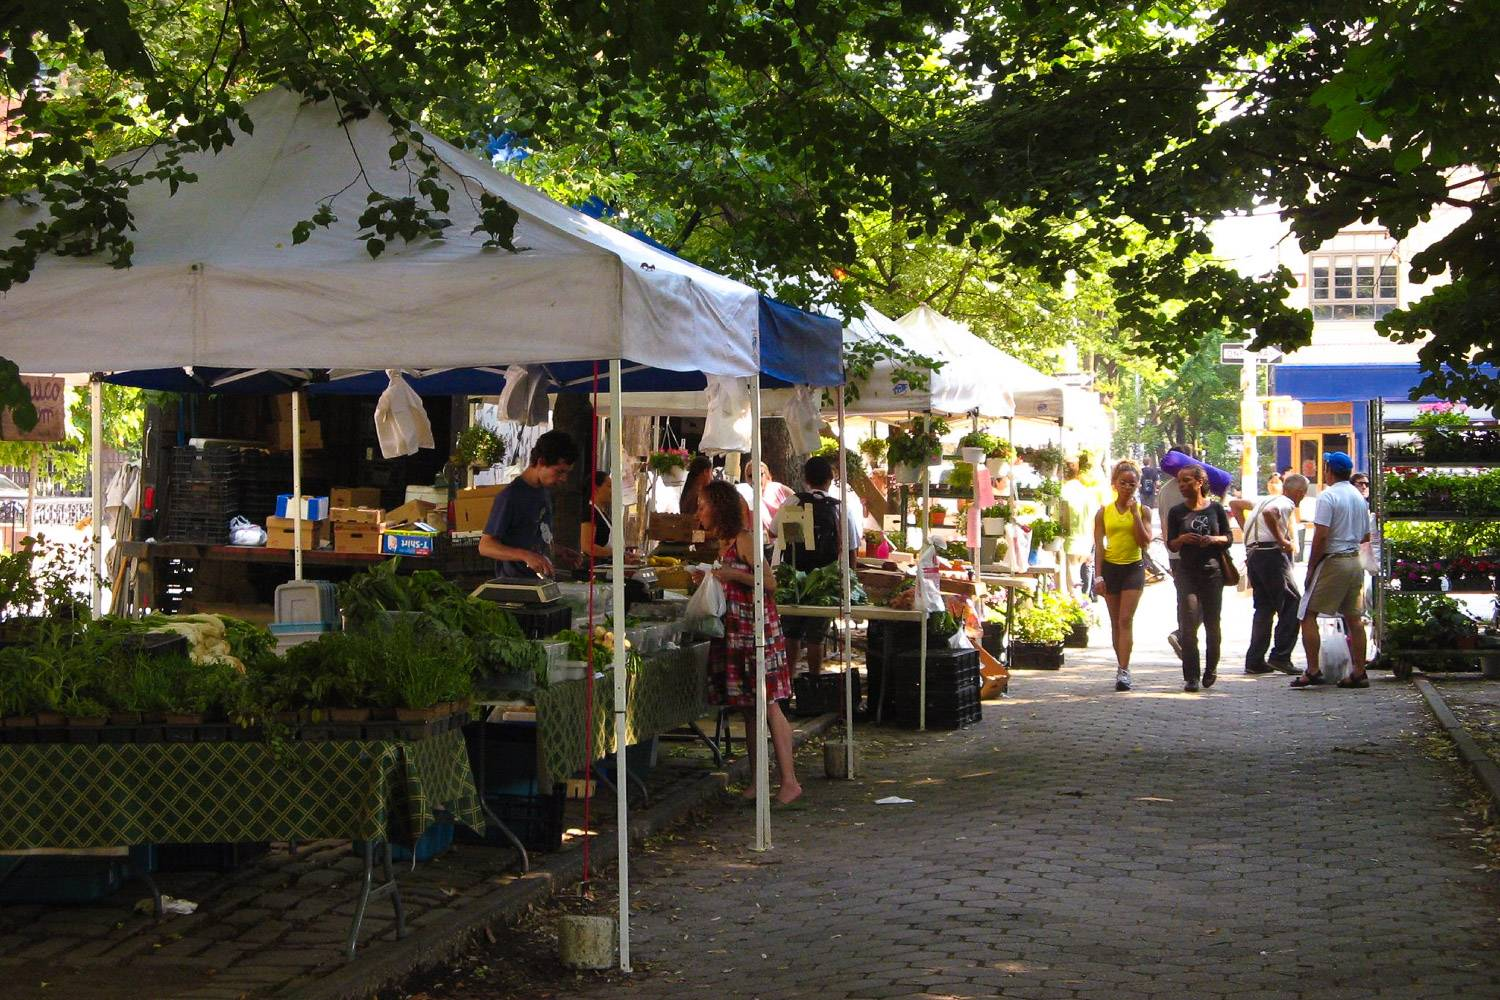 Image of the Fort Greene Park Greenmarket in Brooklyn with rows of stalls along a shaded pathway.